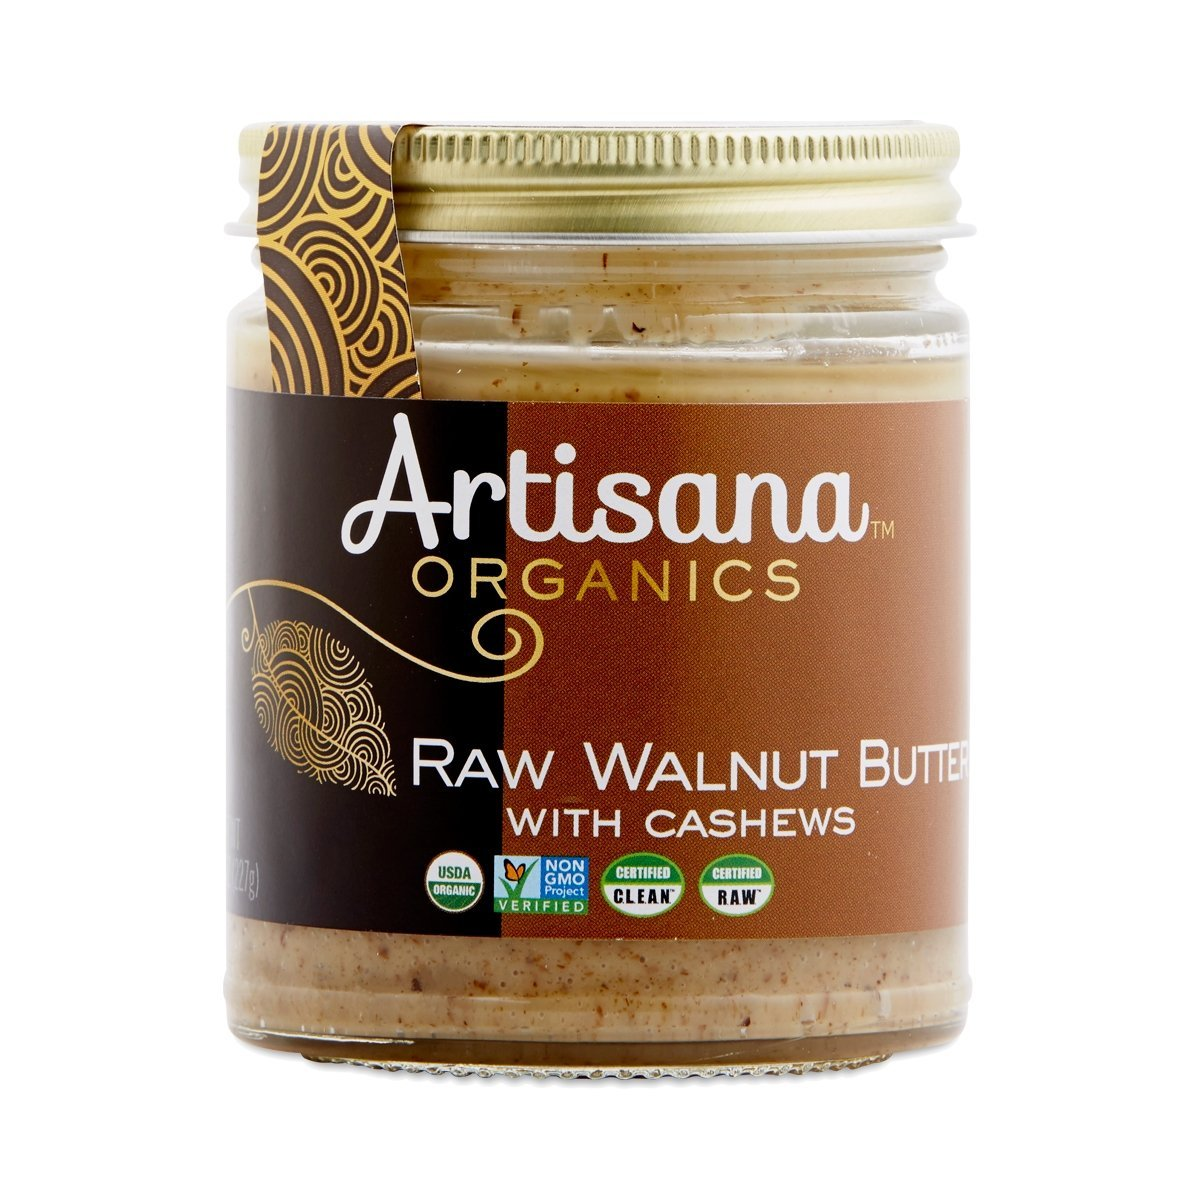 Artisana 100% Organic Raw Walnut Butter with Cashews -- 8 oz 2 Pack - Buy Fast delivery